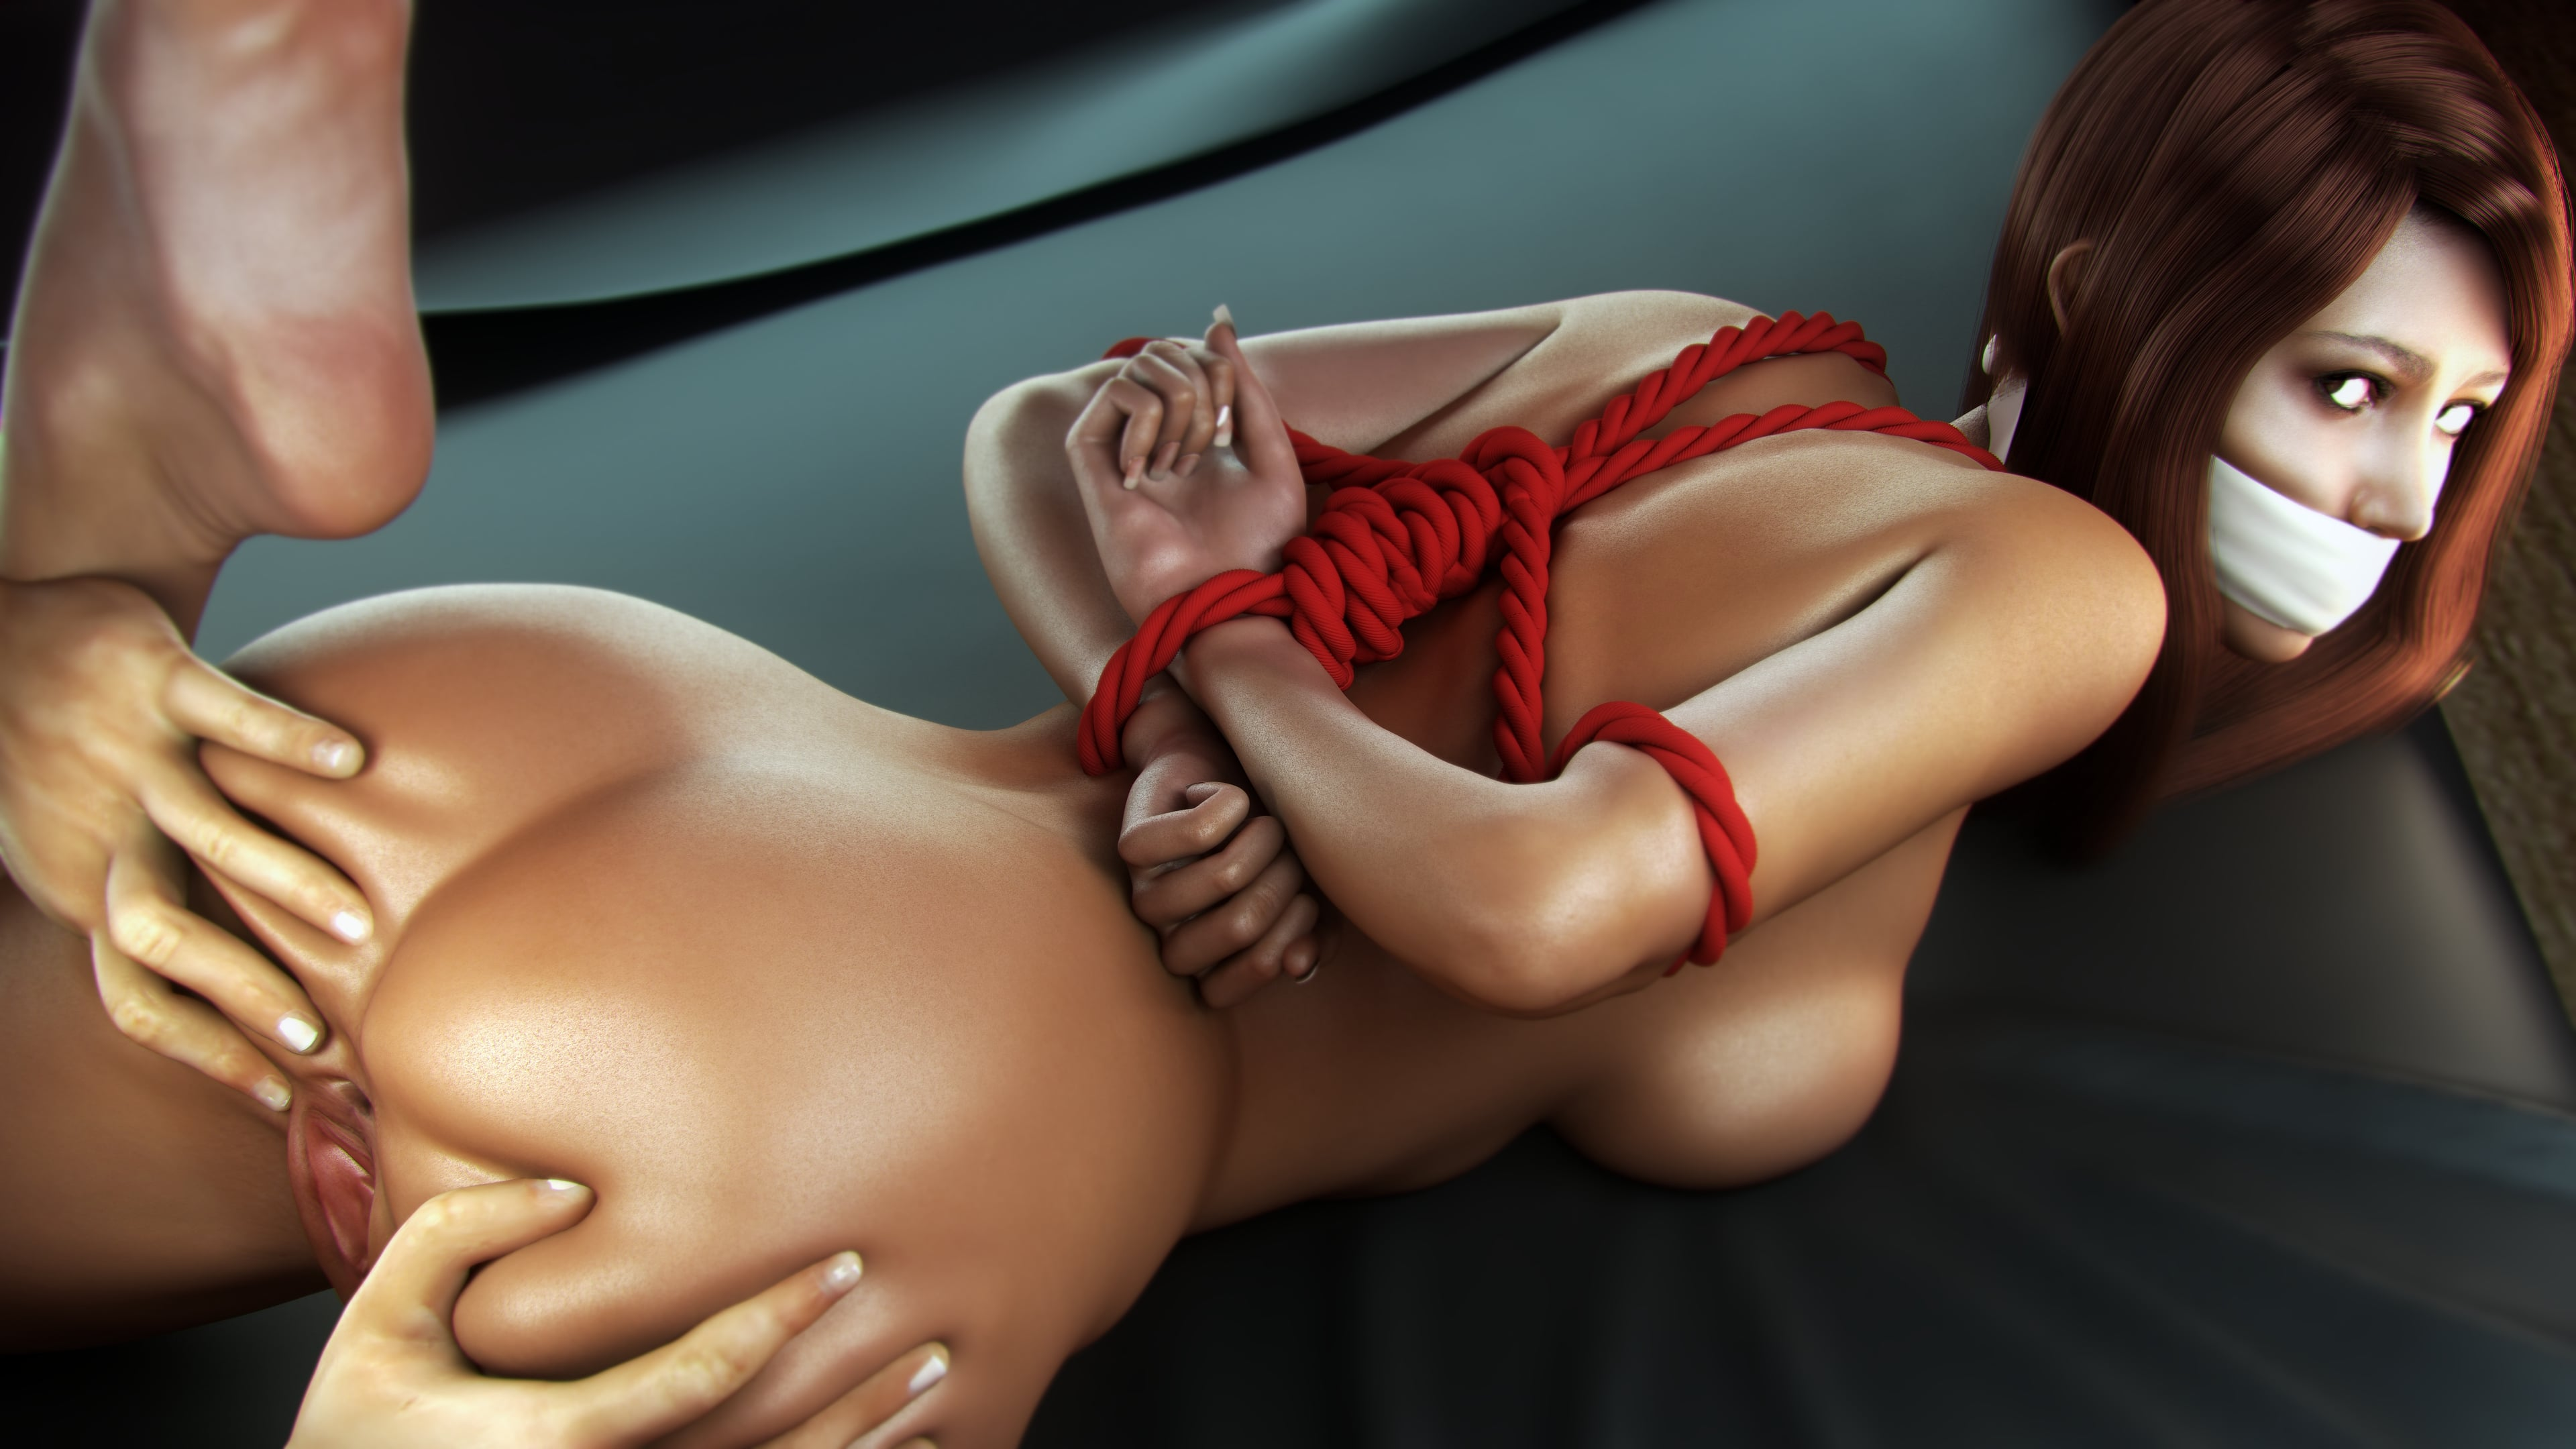 Bdsm Outfit Adult Sex Games Young Stock Photo